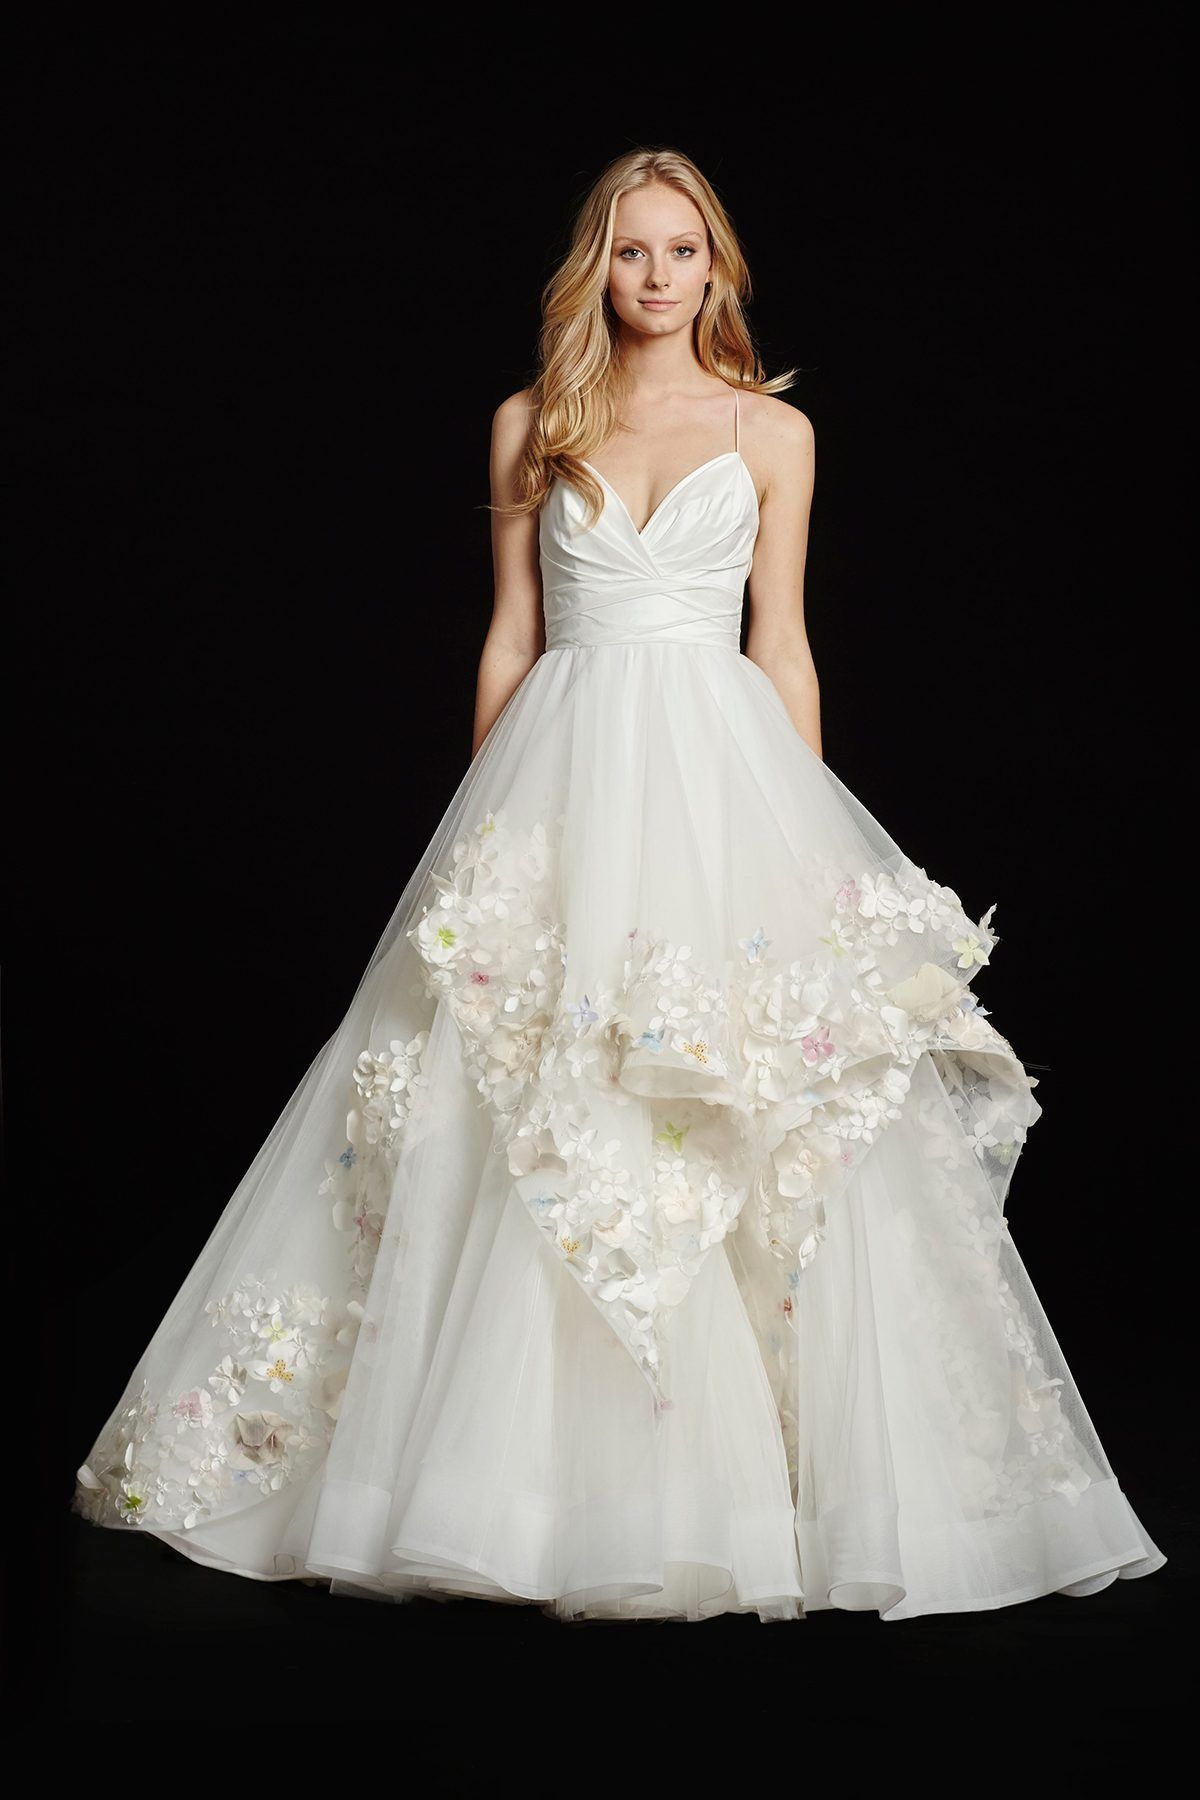 Style paige alternate view girlsu wedding dress pinterest